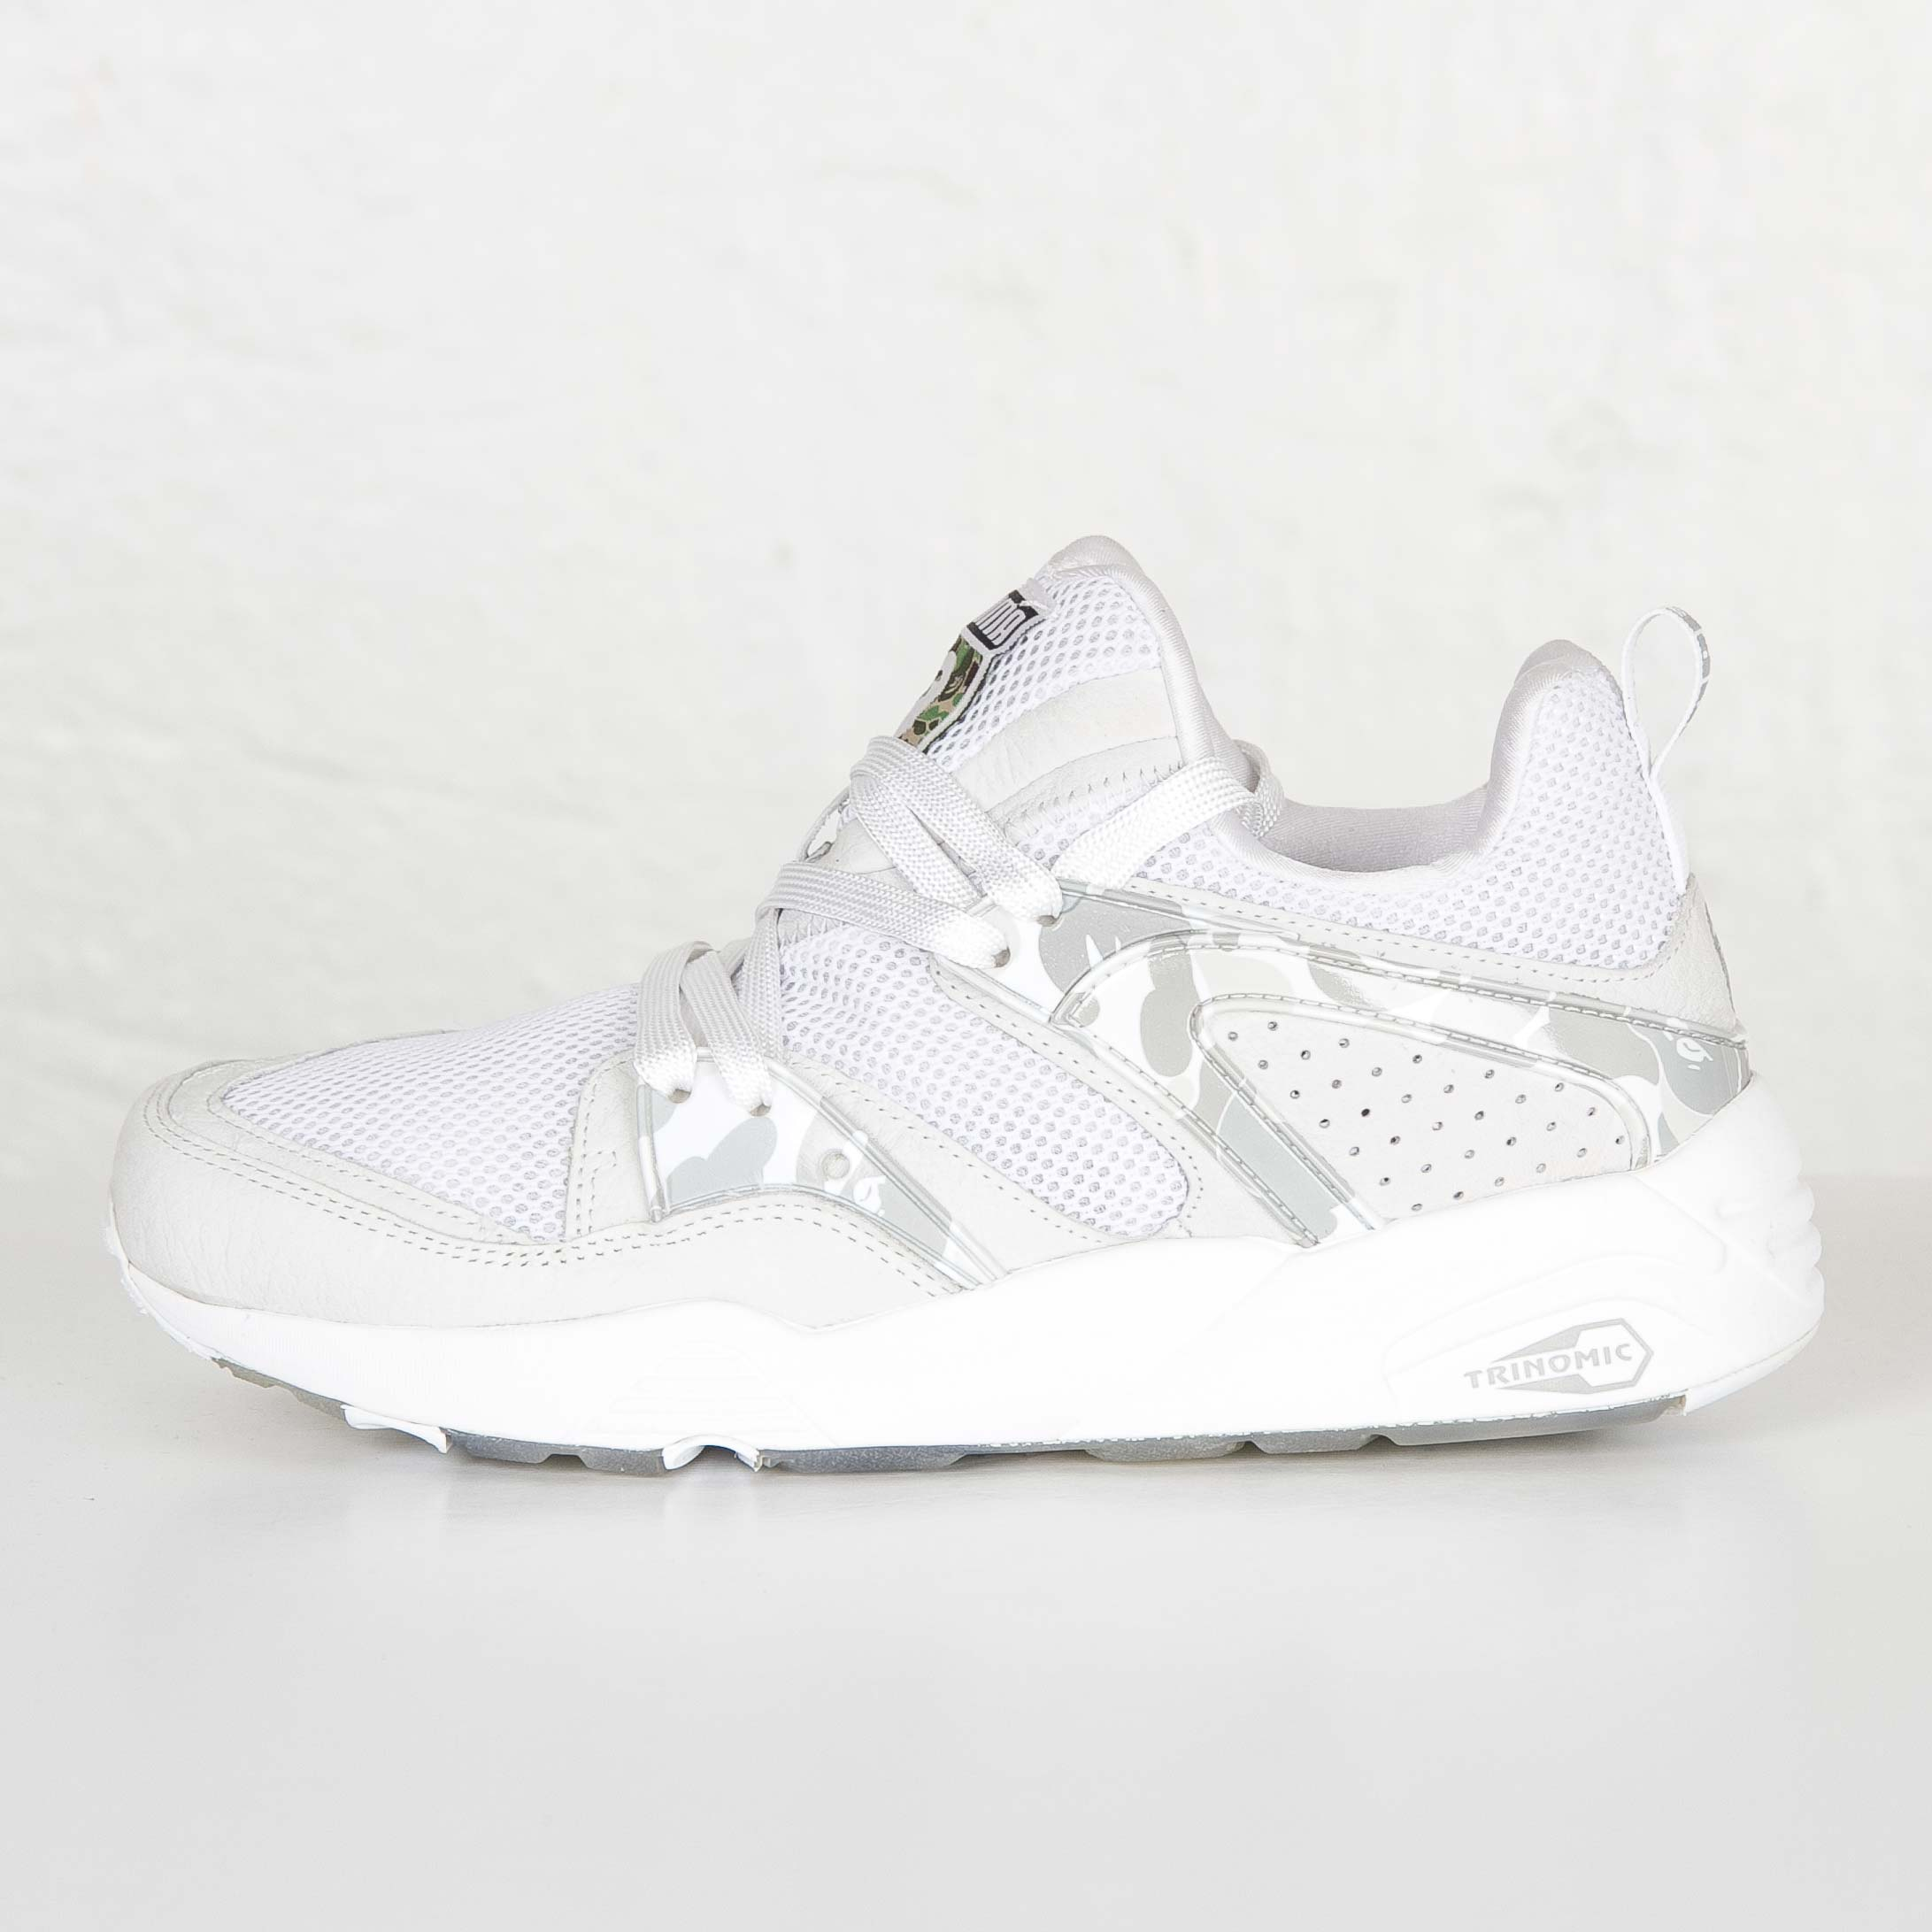 532411273404 Puma Blaze Of Glory x Bape - 358844-01 - Sneakersnstuff